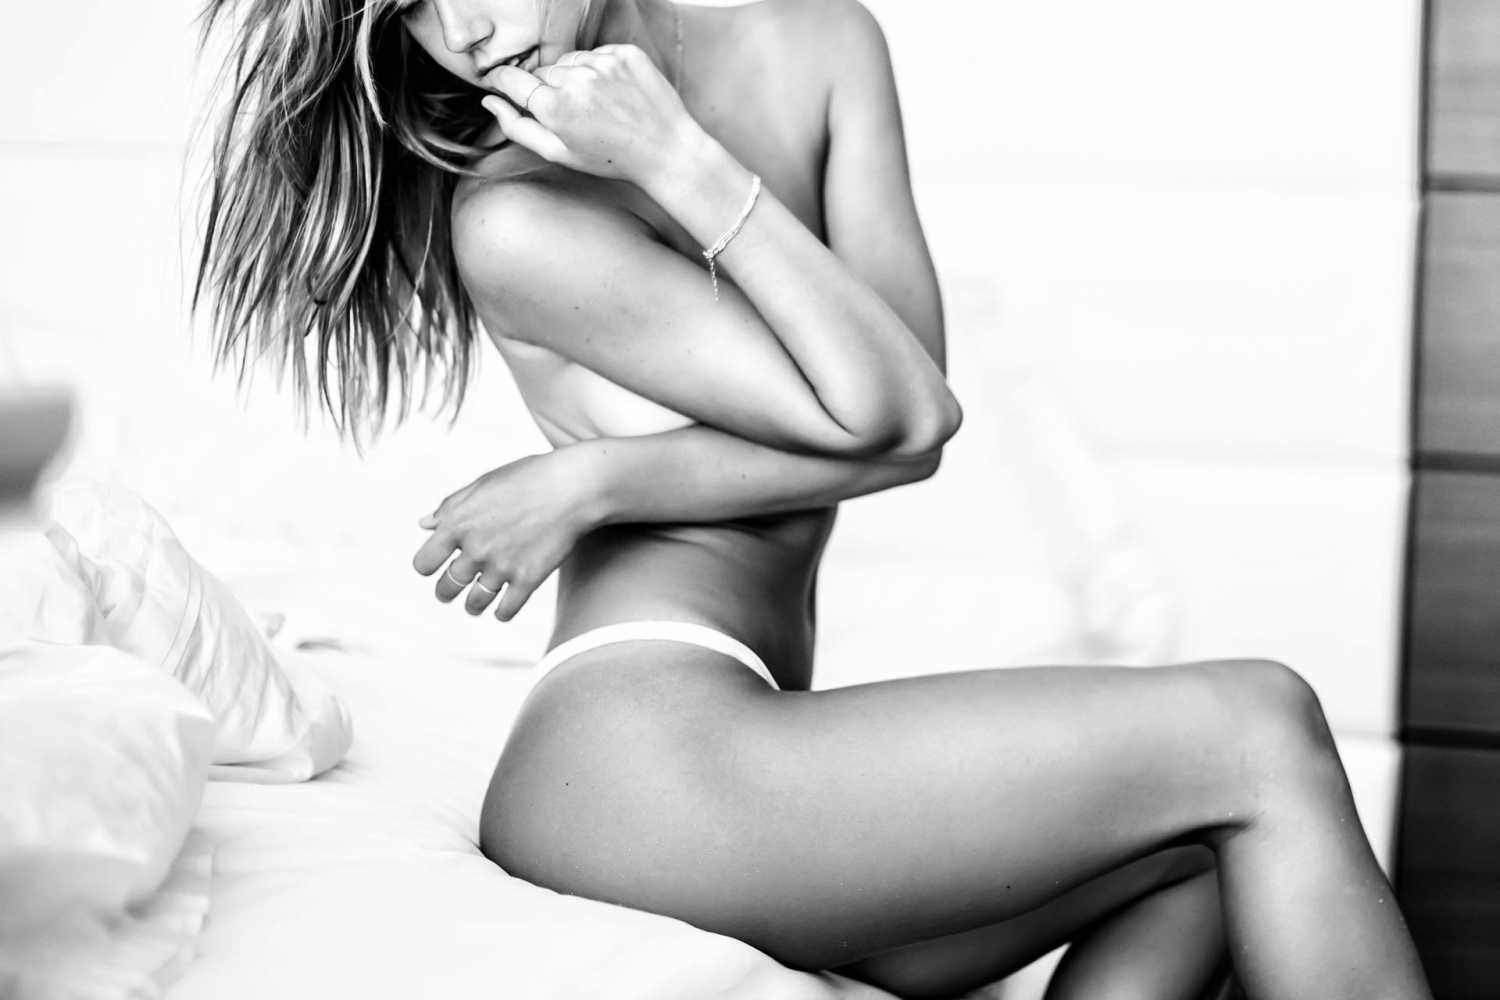 Alexis Ren goes topless for new photoshoot